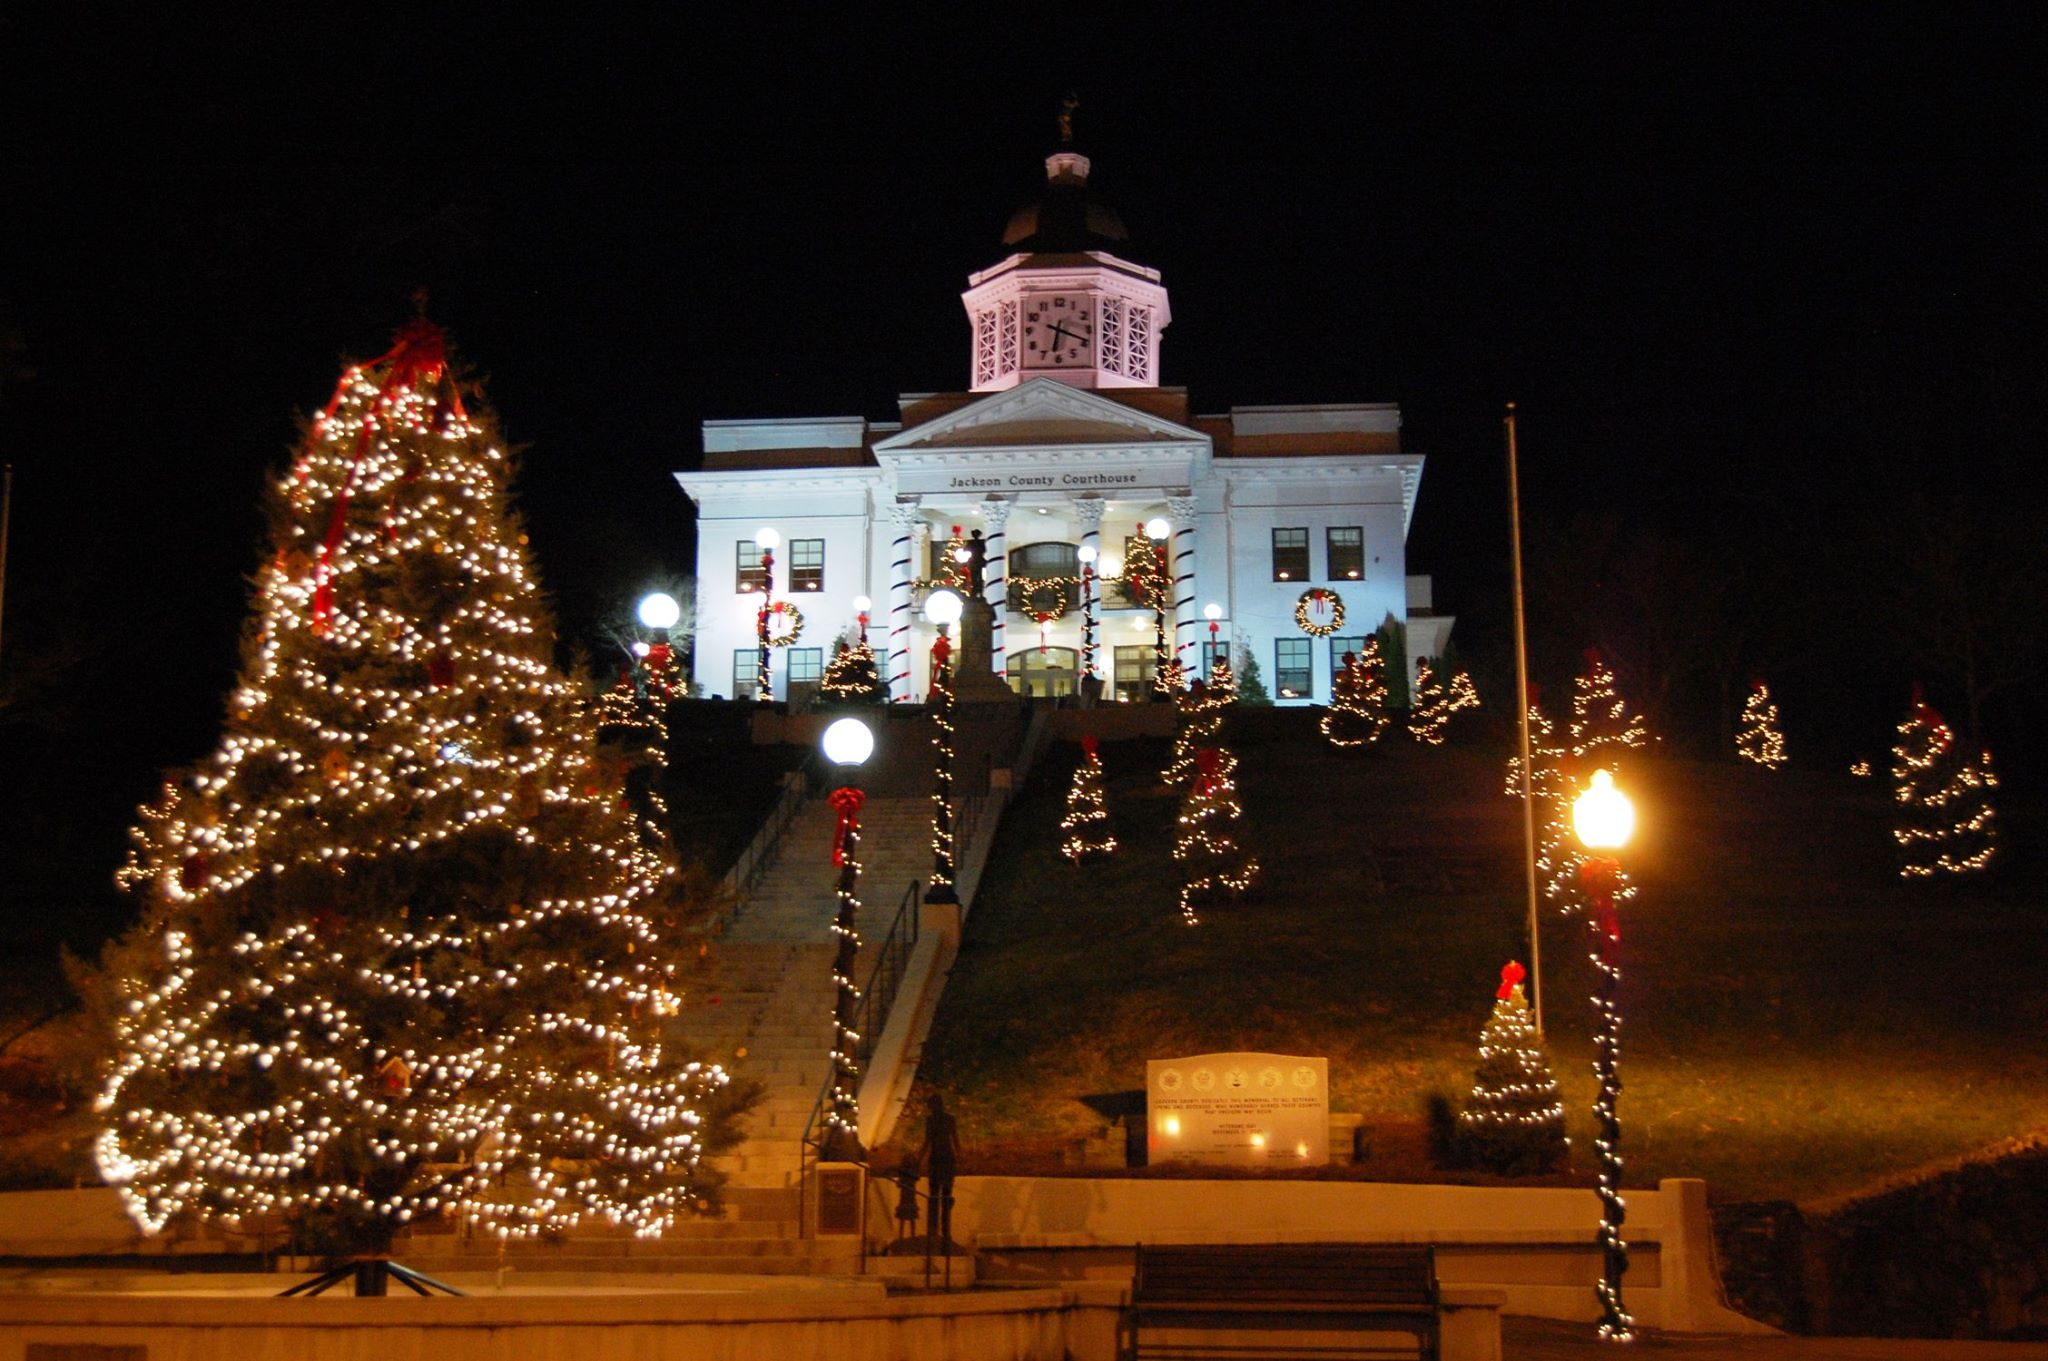 Jackson County NC courthouse during Christmas